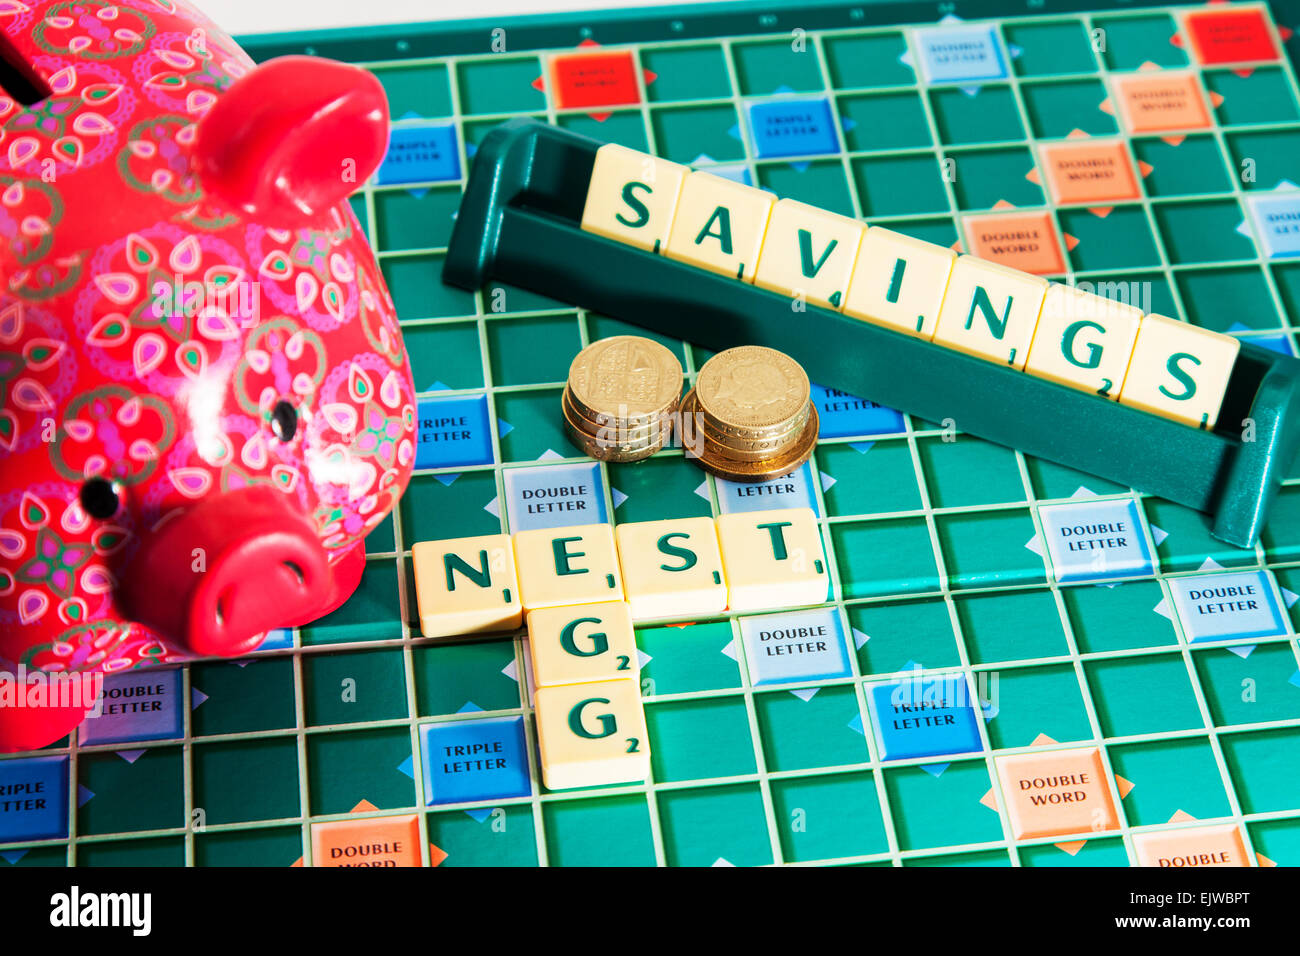 piggy bank nest egg savings money pension future save cash words using scrabble tiles to spell out, nest egg, Nest - Stock Image